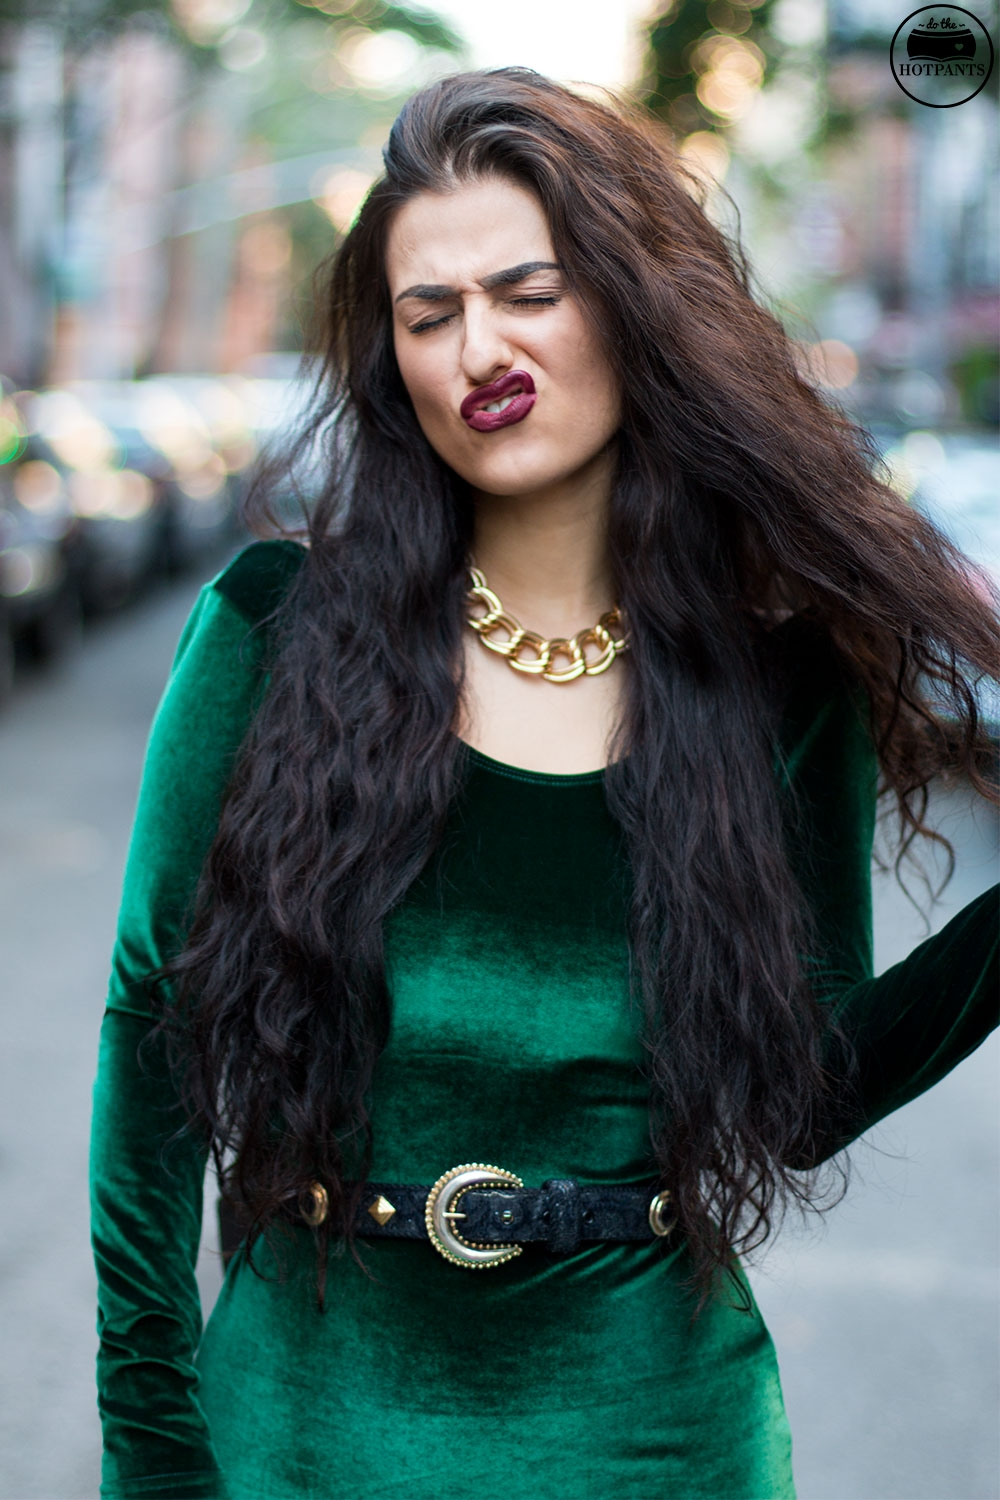 Do The Hotpants Dana Suchow Green Velvet Bodycon Dress Minidress Curvy Woman Long Hairstyle Wavy Hair IMG_3333